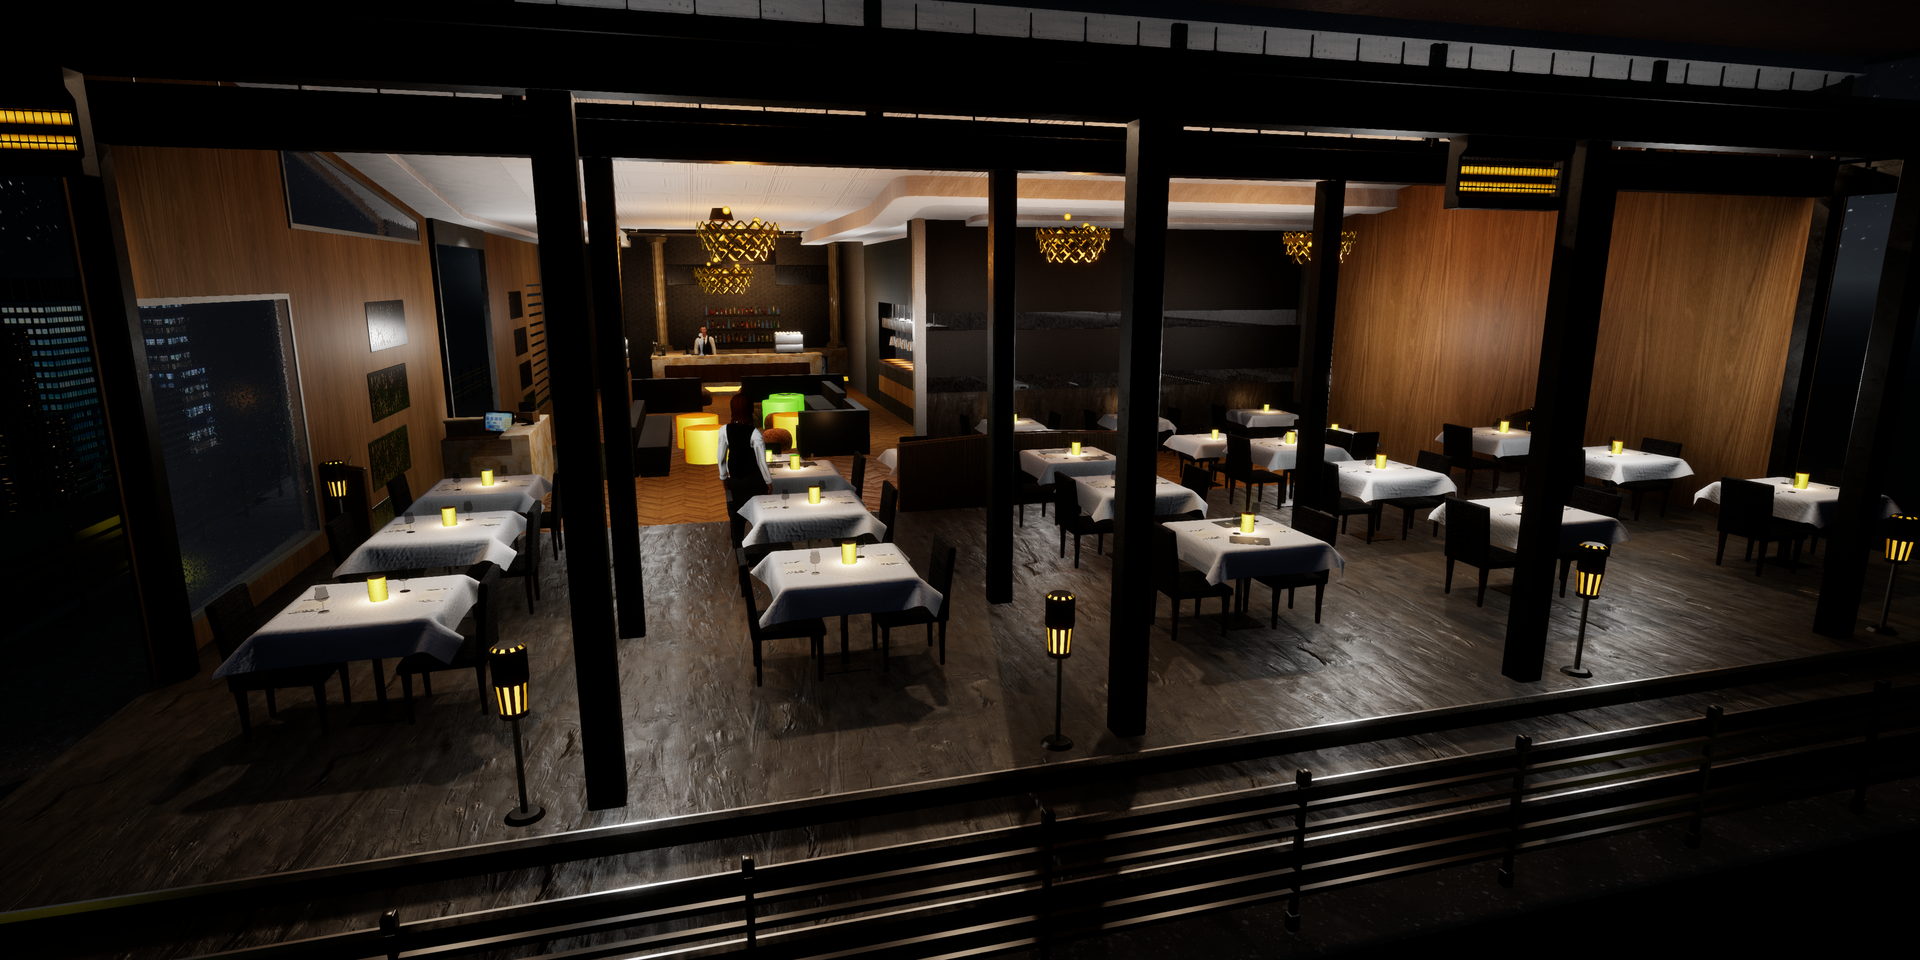 Virtual restaurant internal